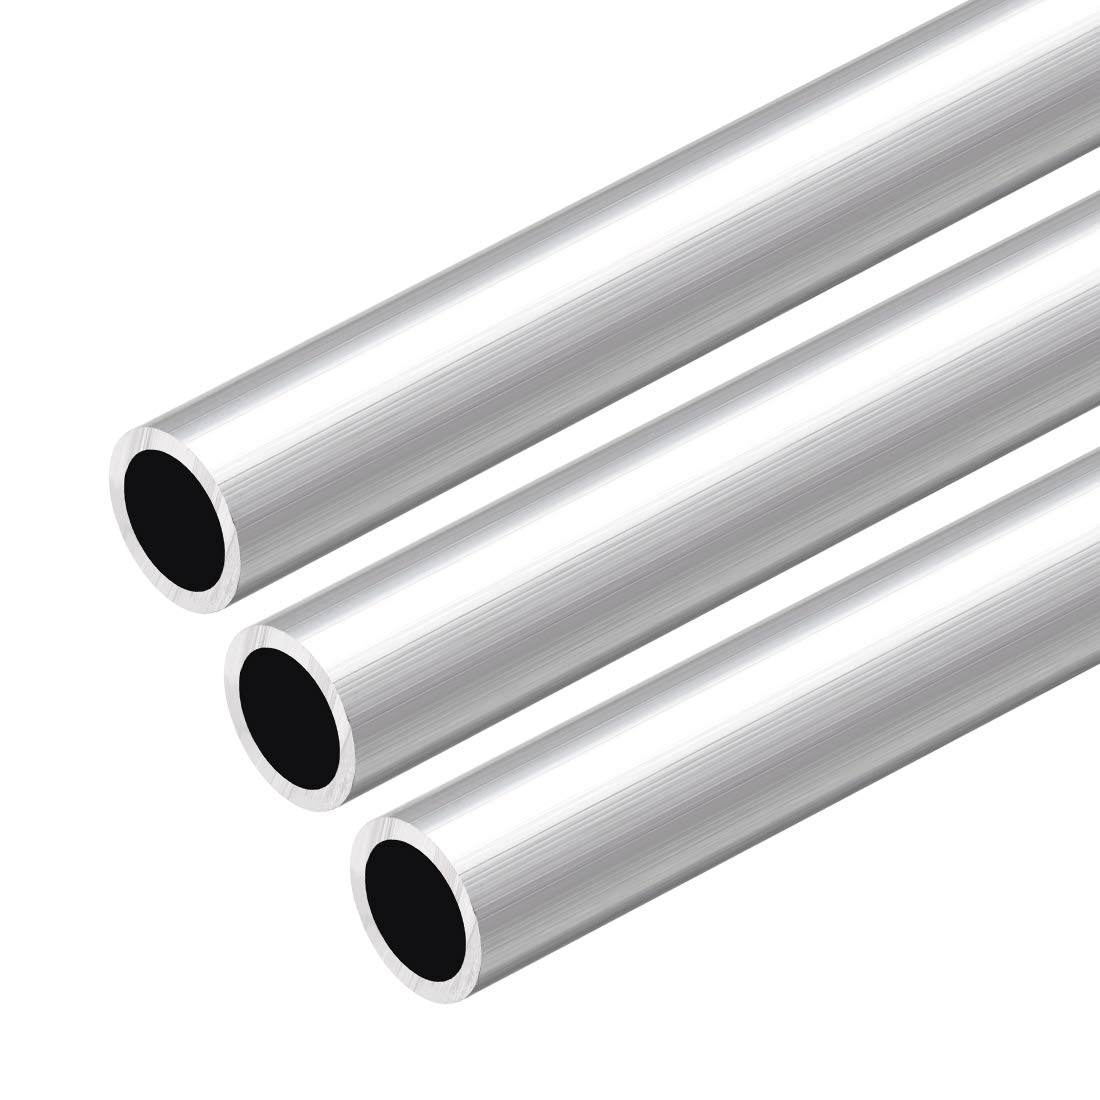 uxcell 6063 Attention brand Aluminum Round Tube 300mm 10mm OD Length Max 70% OFF Inner 14mm